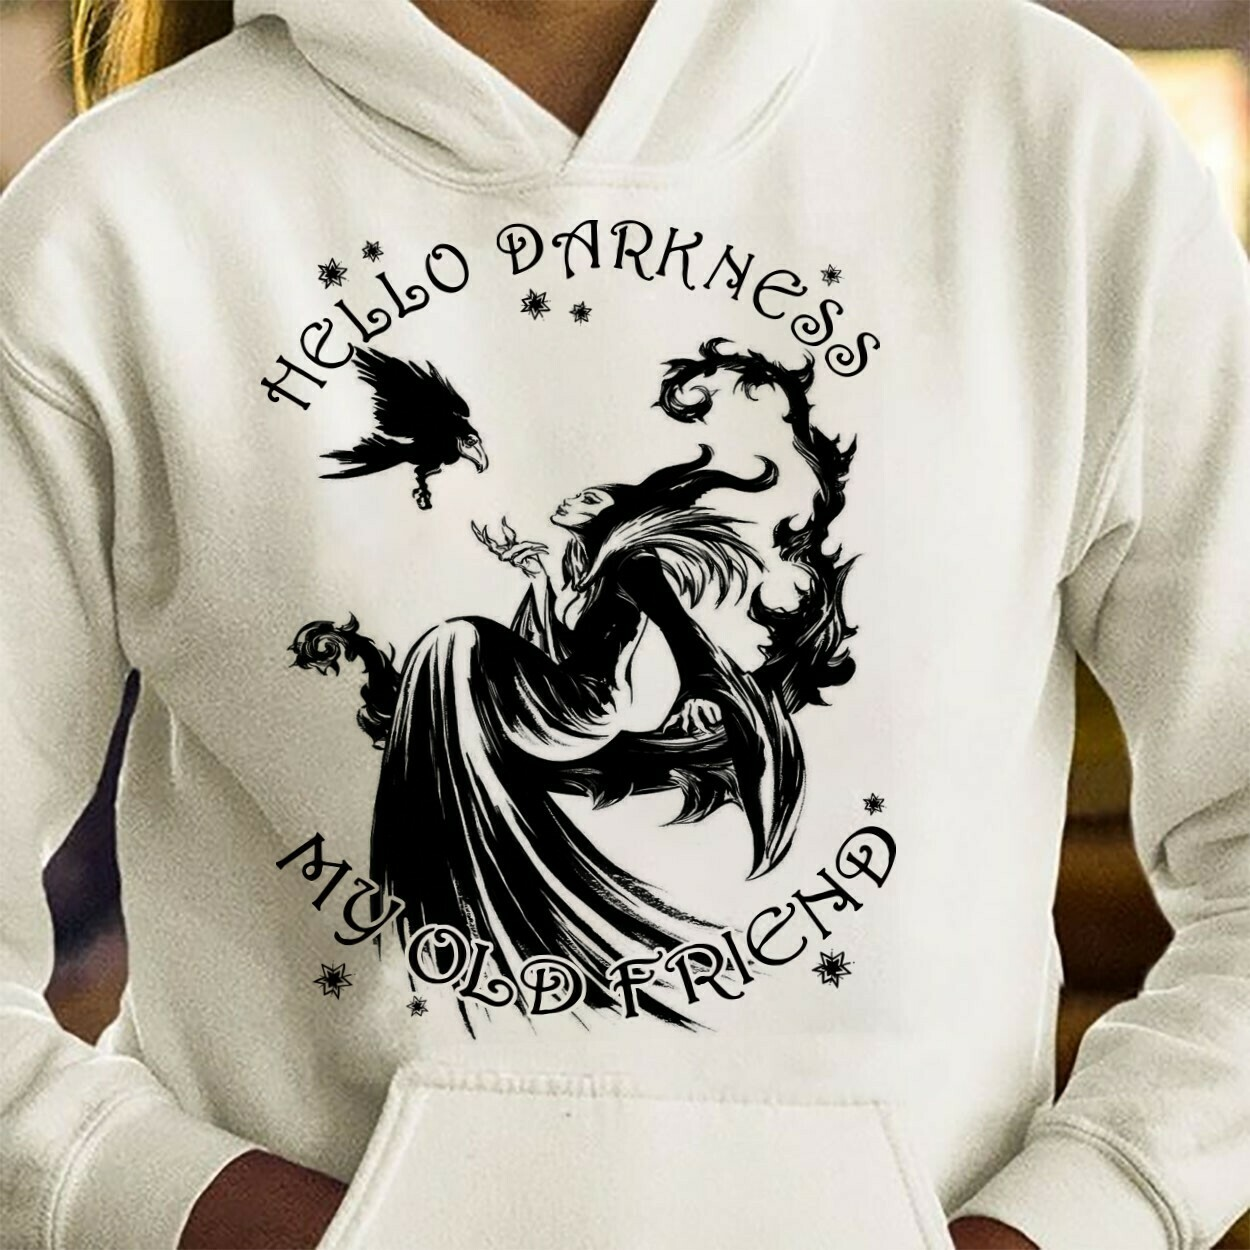 Hello Darkness My Old Friend Maleficent Disney Villains Bad Girls Have More Fun Walt Disney World Disneyland Park Family Vacation T Shirt Long Sleeve Sweatshirt Hoodie Jolly Family Gifts